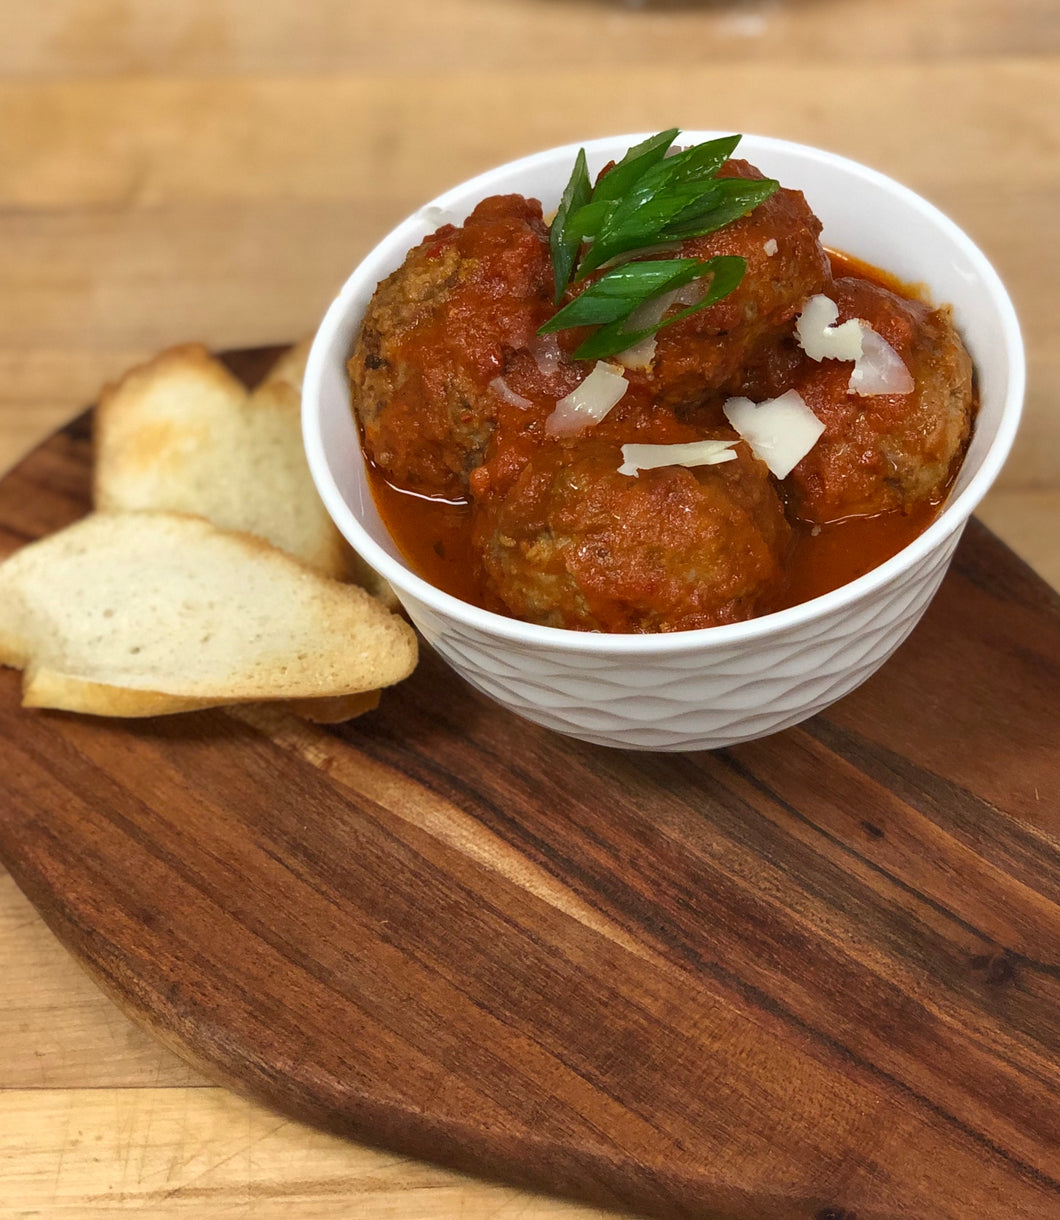 Italian Meatballs in Roasted Red Pepper Sauce